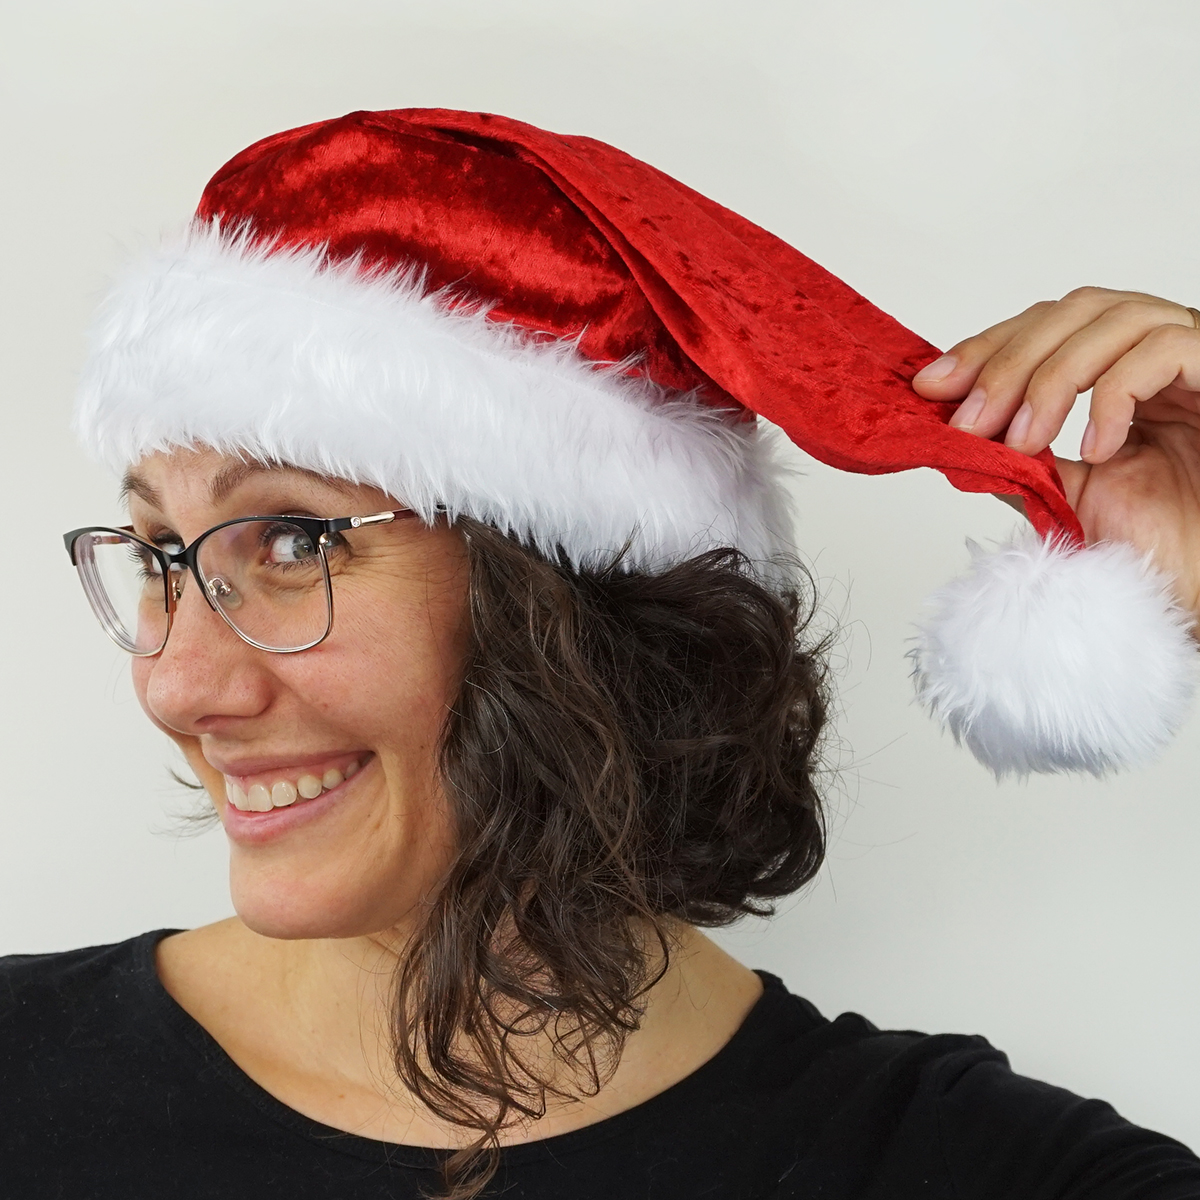 Learn how to sew a Santa hat with this FREE sewing pattern! Get into the holiday spirit with your own DIY Santa Claus hat with a super soft faux fur brim and pompom! 3 sizes included for all the family to play at being Father Christmas! #diysantahat #santahatpattern #christmassewing